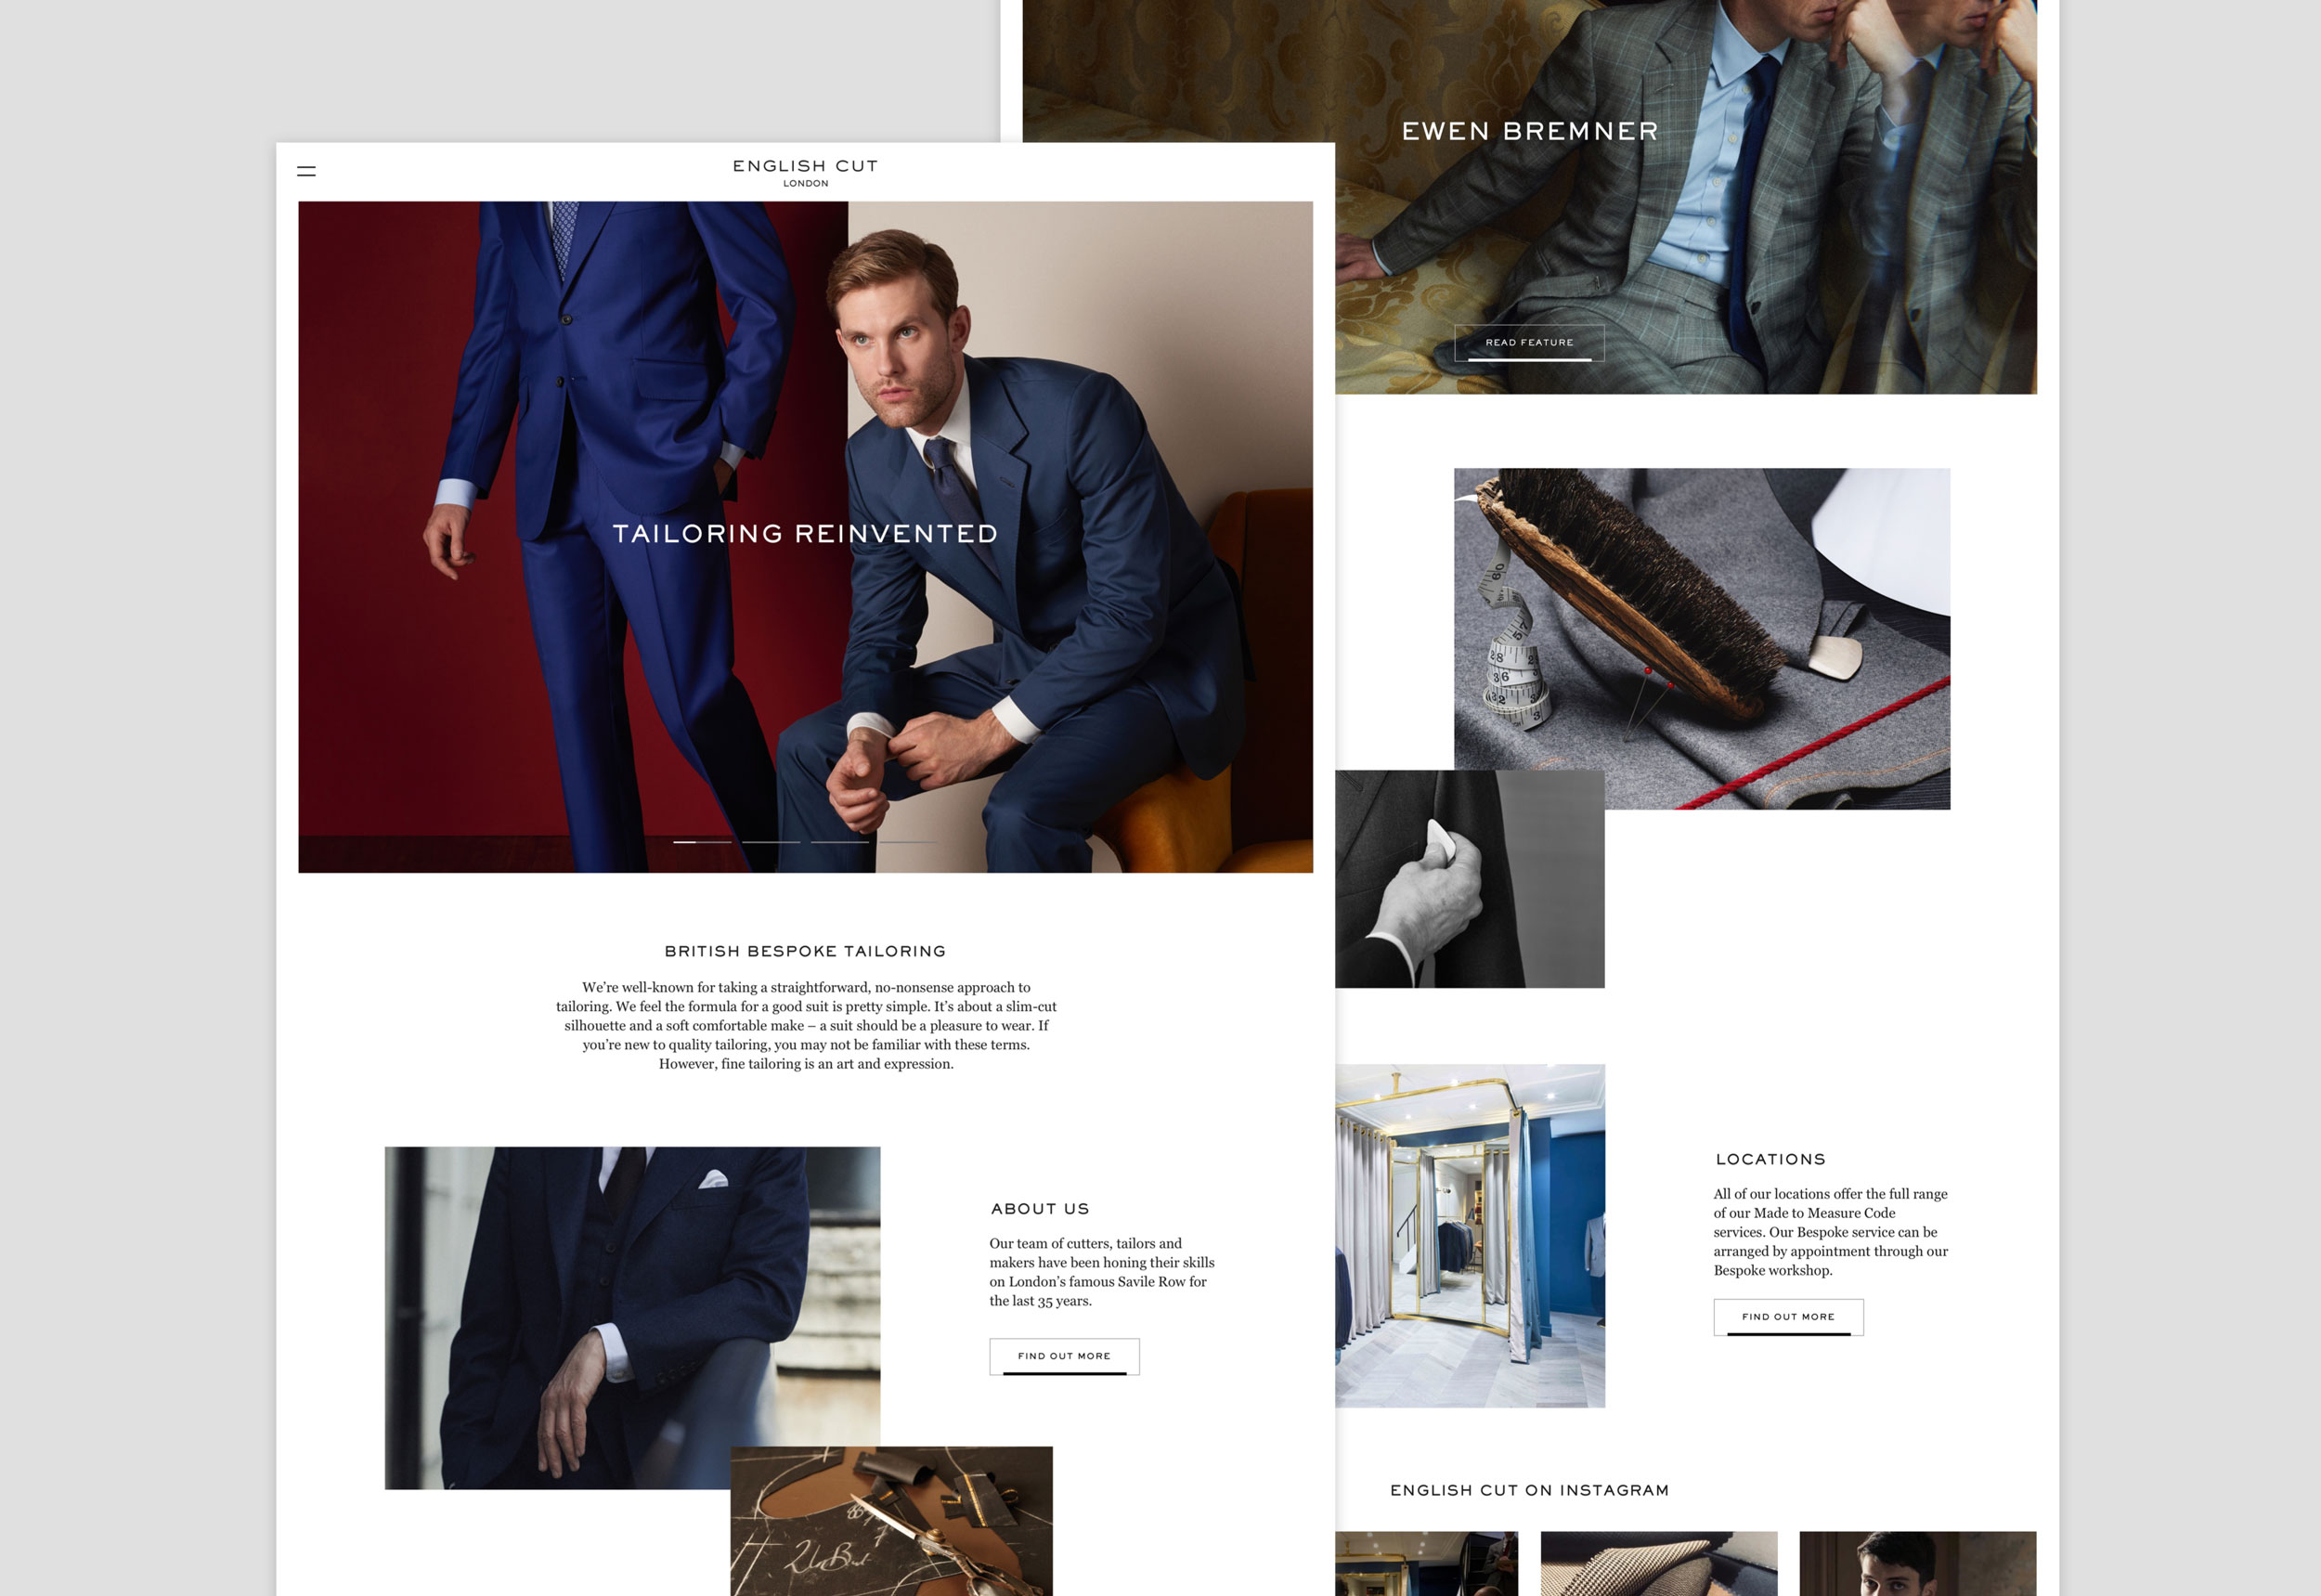 English Cut website designed by She Was Only